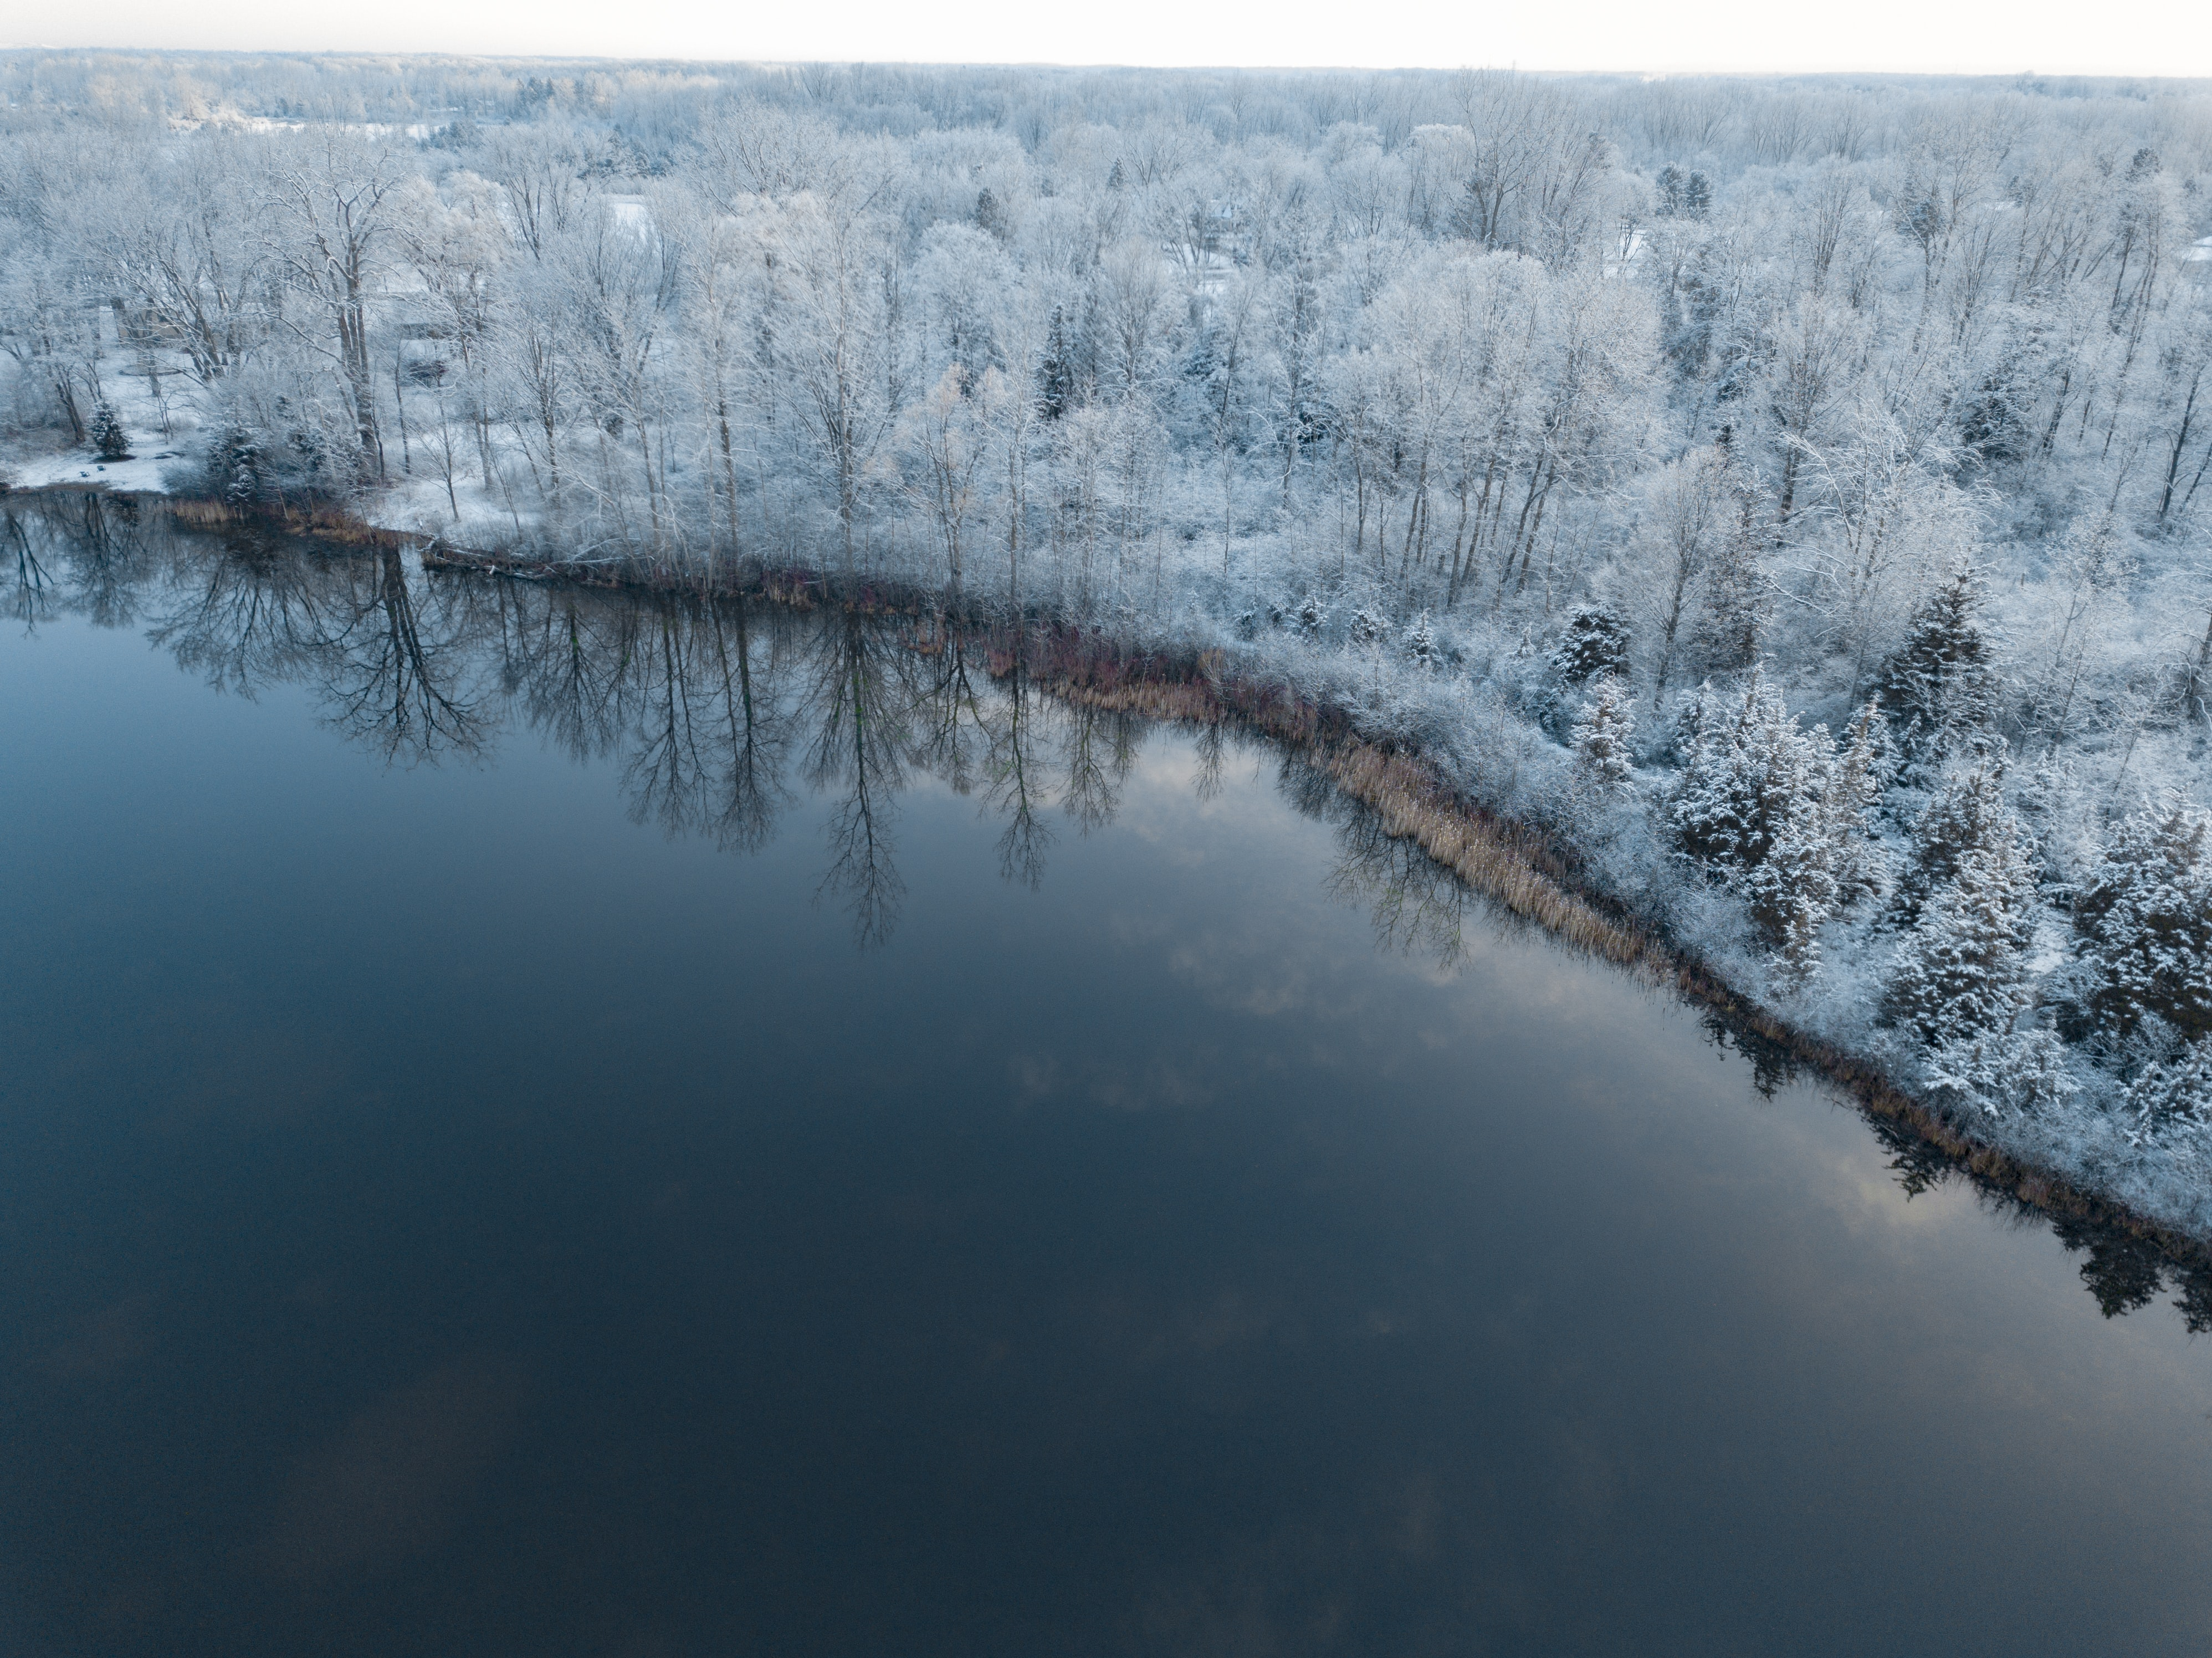 trees covered by snow near body of water